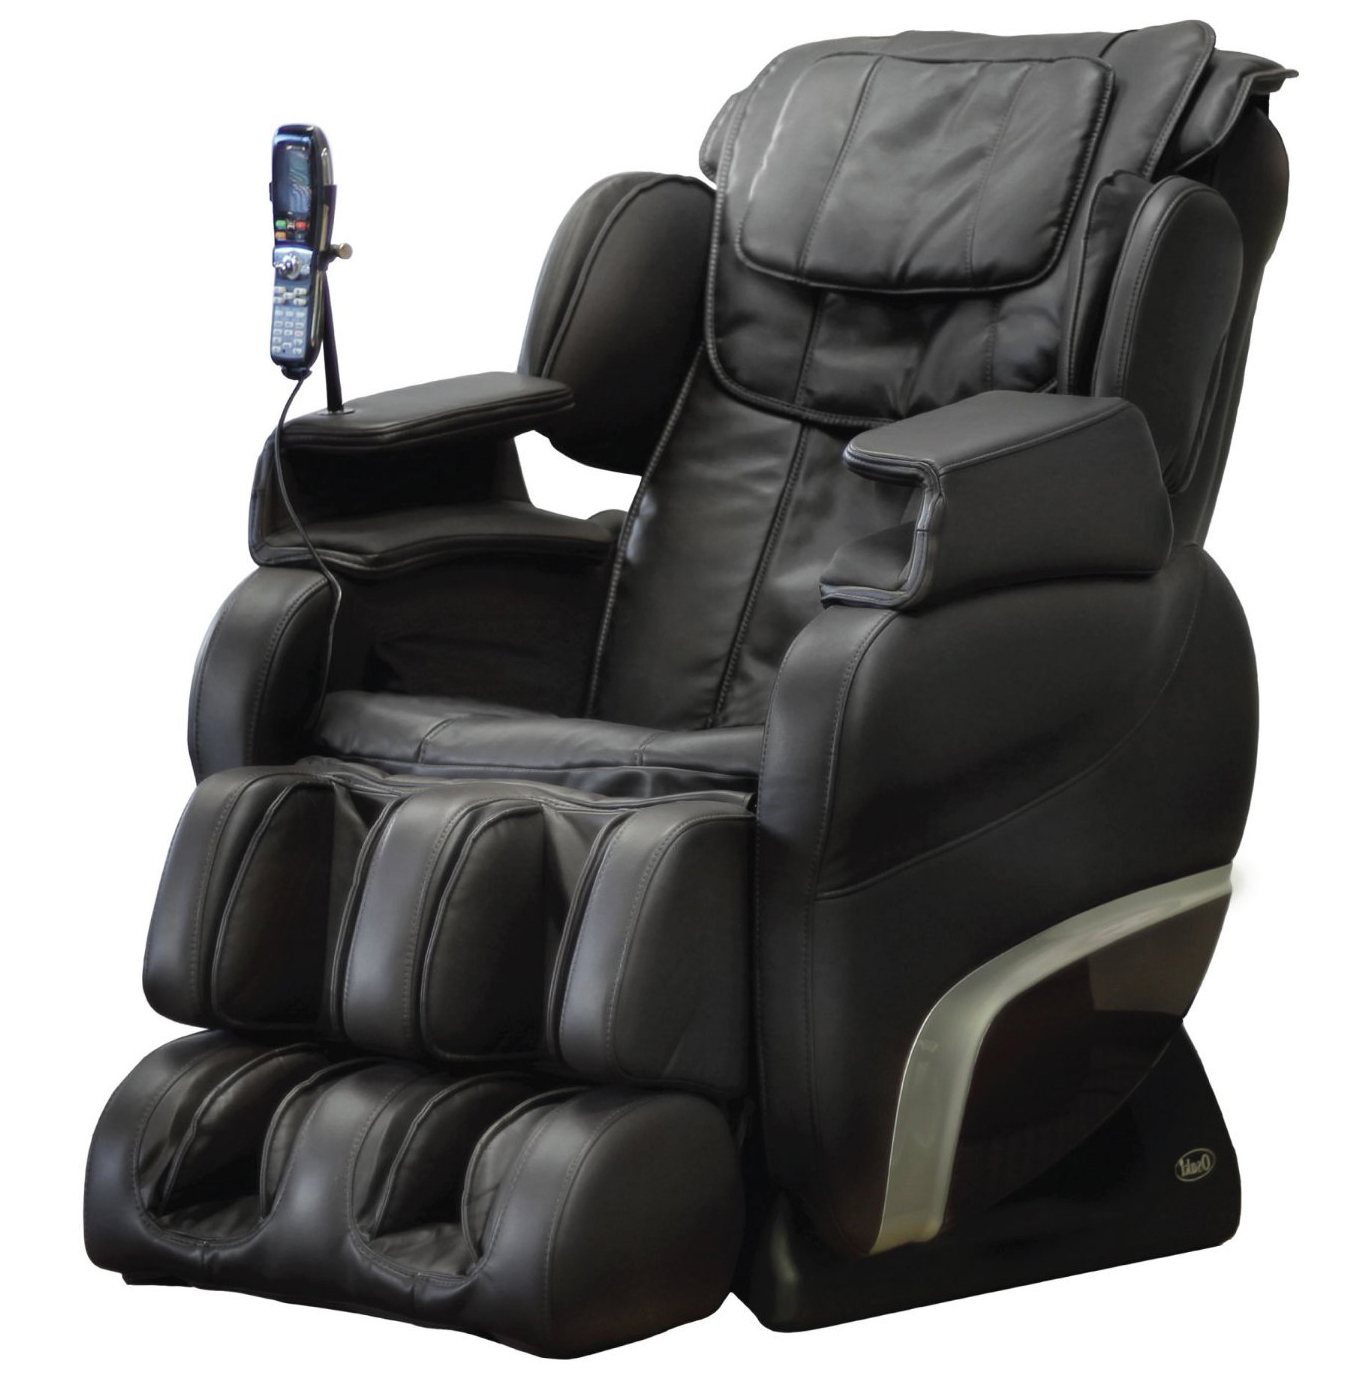 Experience the Titan TI-7700R Massage Chair Recliner. Features Foot